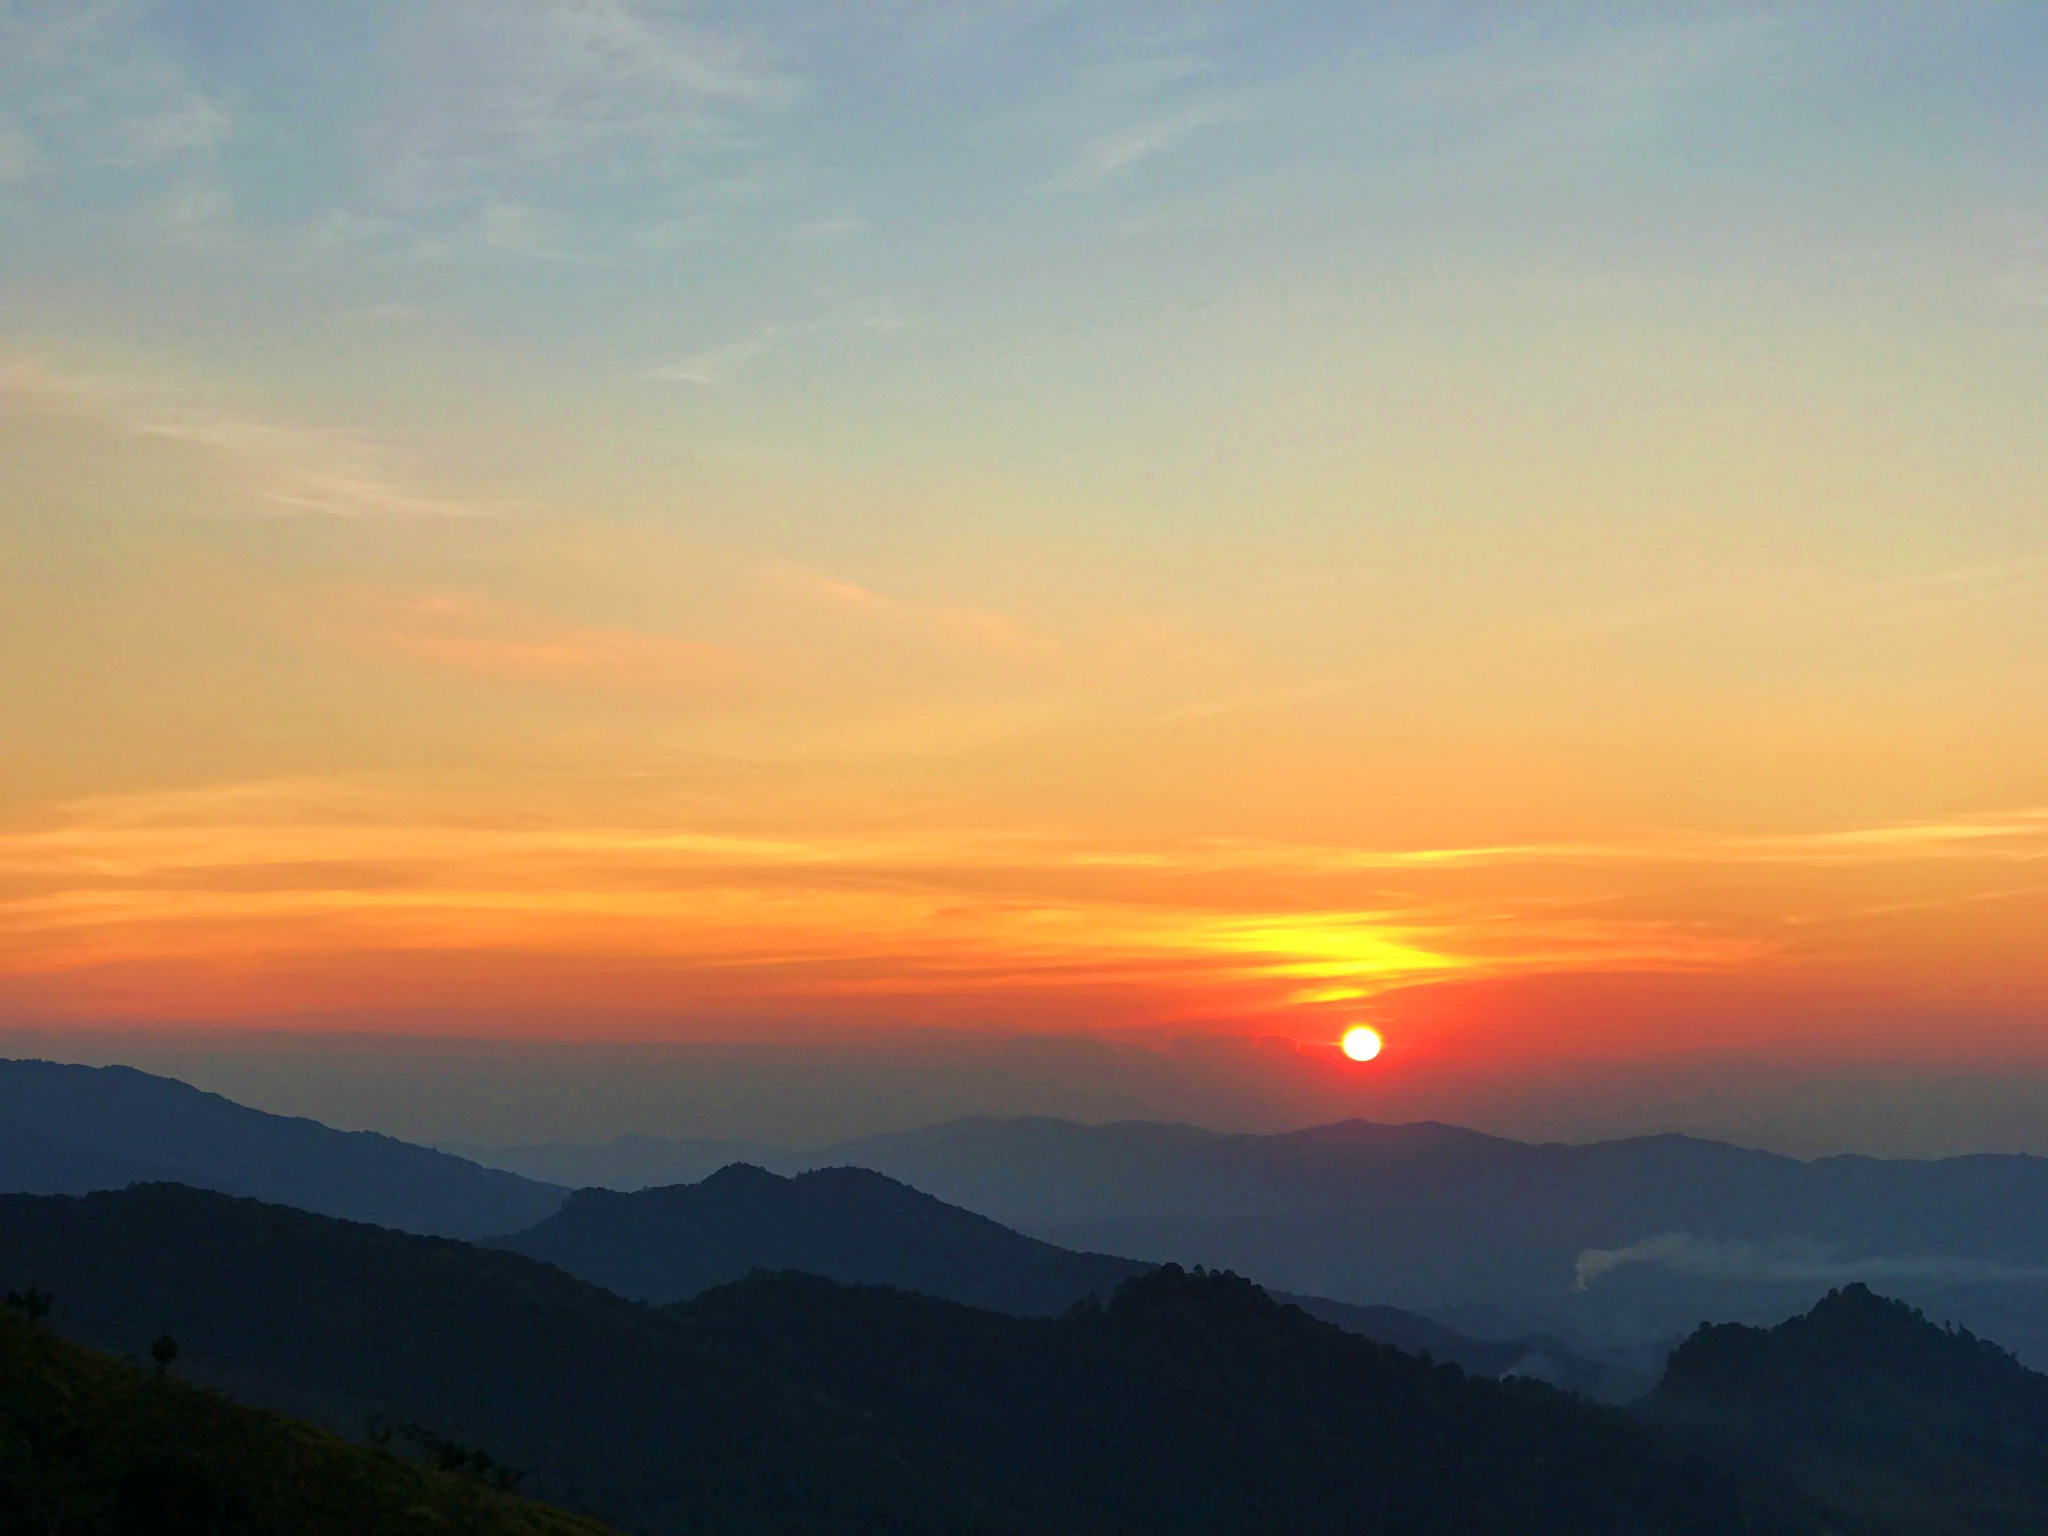 Sunset over the mountain by SOE AUNG LIN